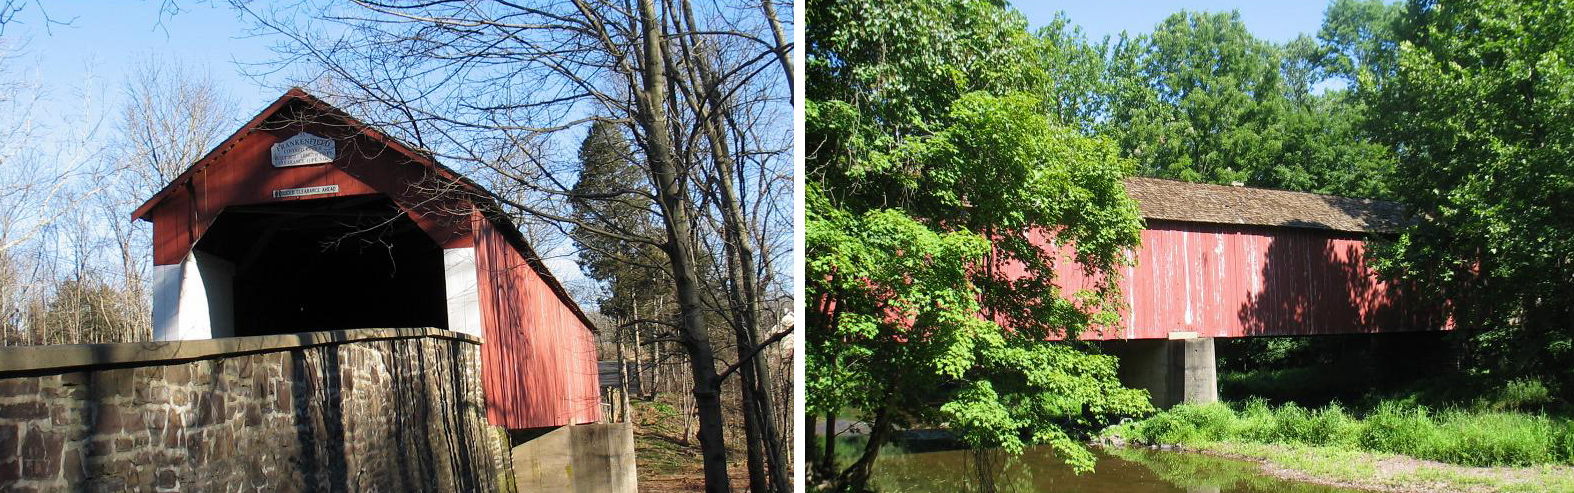 Frankenfeld covered bridge